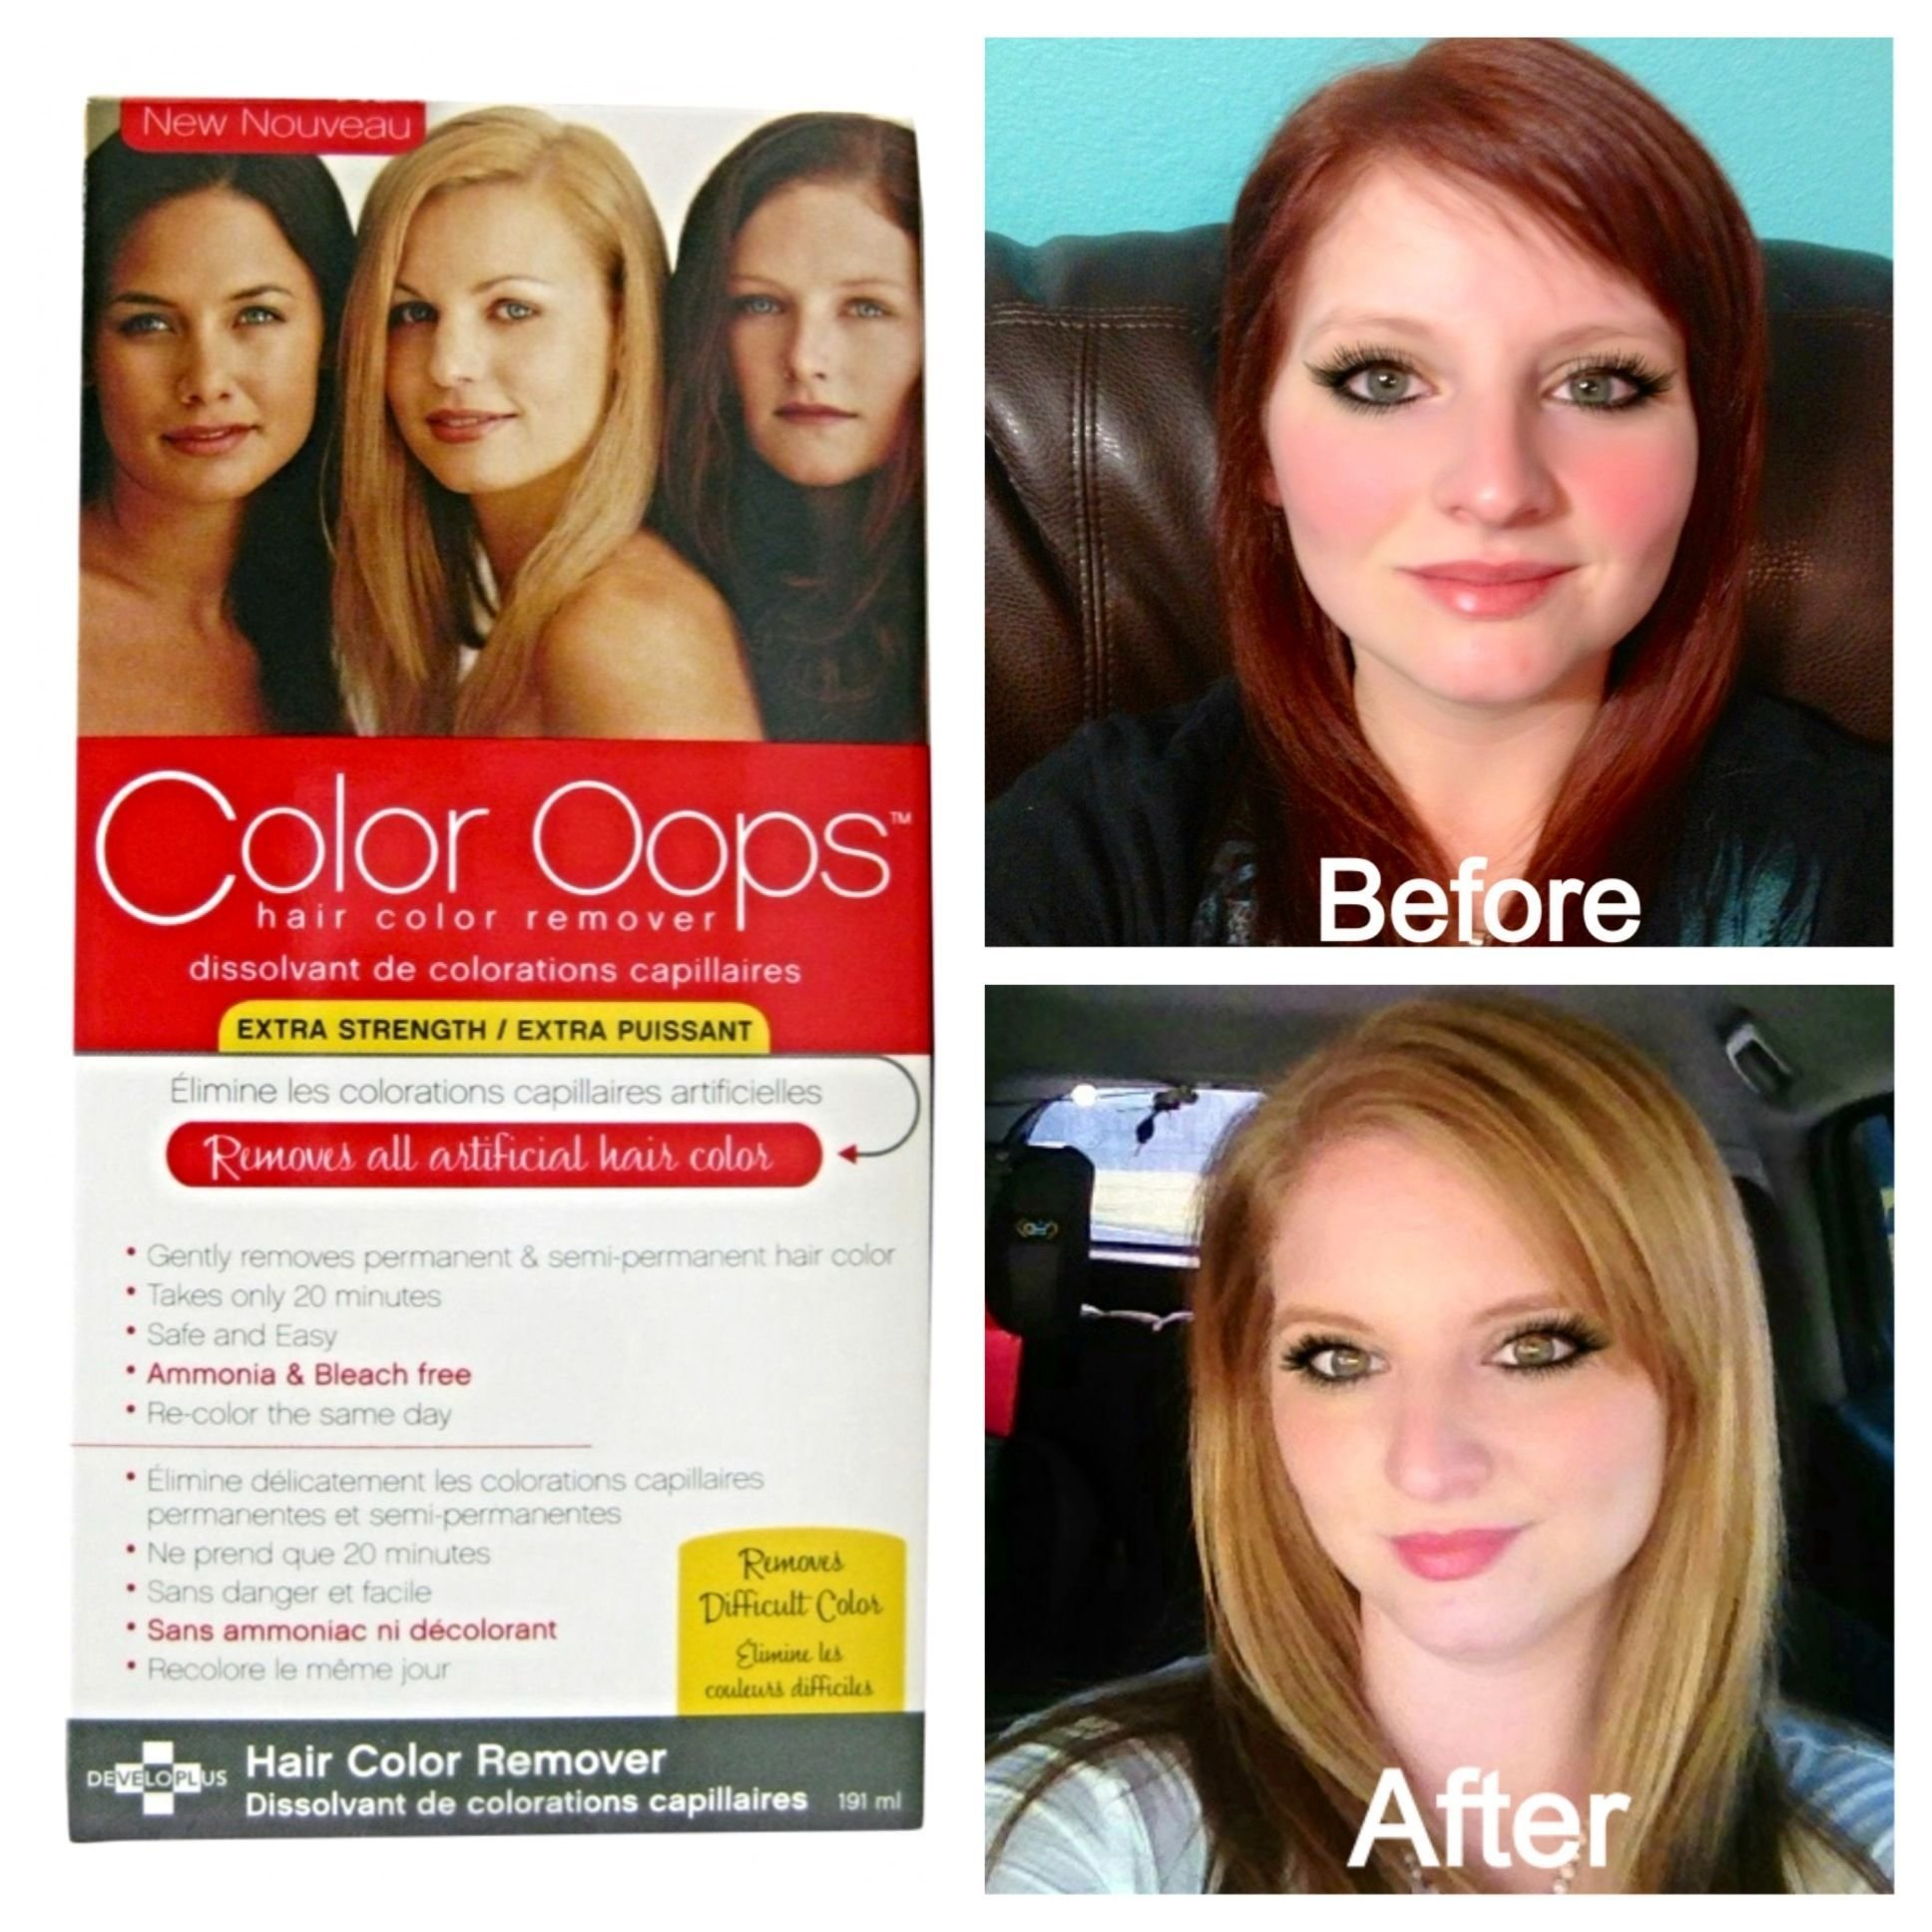 The Best Color Oops Is A Safe Way To Remove Permanent And Semi Pictures